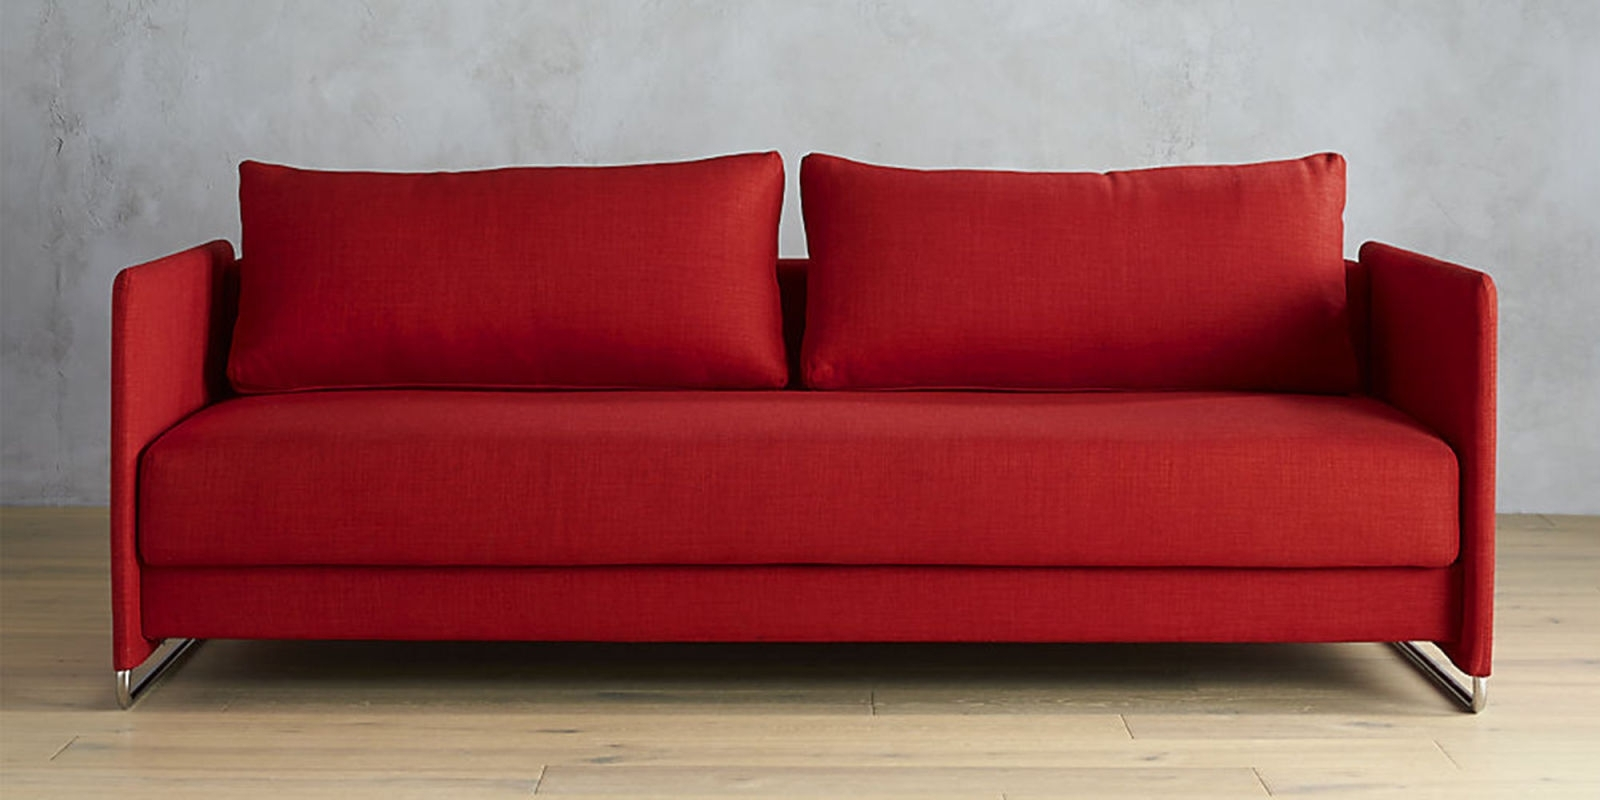 Appealing Design Ideas Of Best Sleeper Sofas (View 2 of 20)